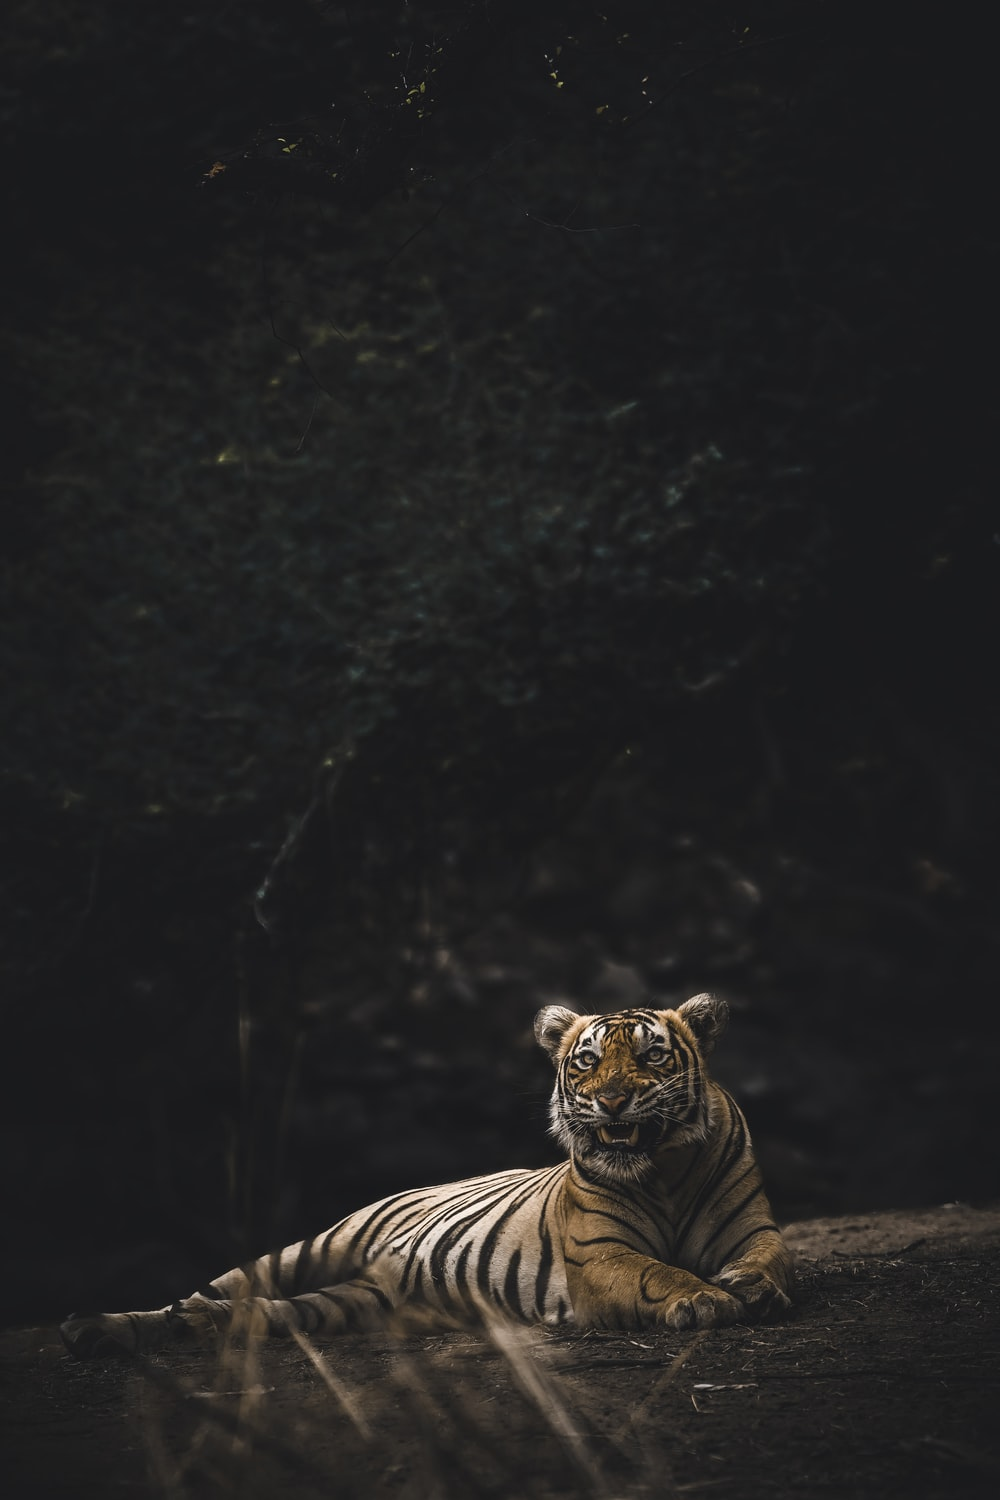 Tiger Pictures Download Free Images Stock Photos On Unsplash